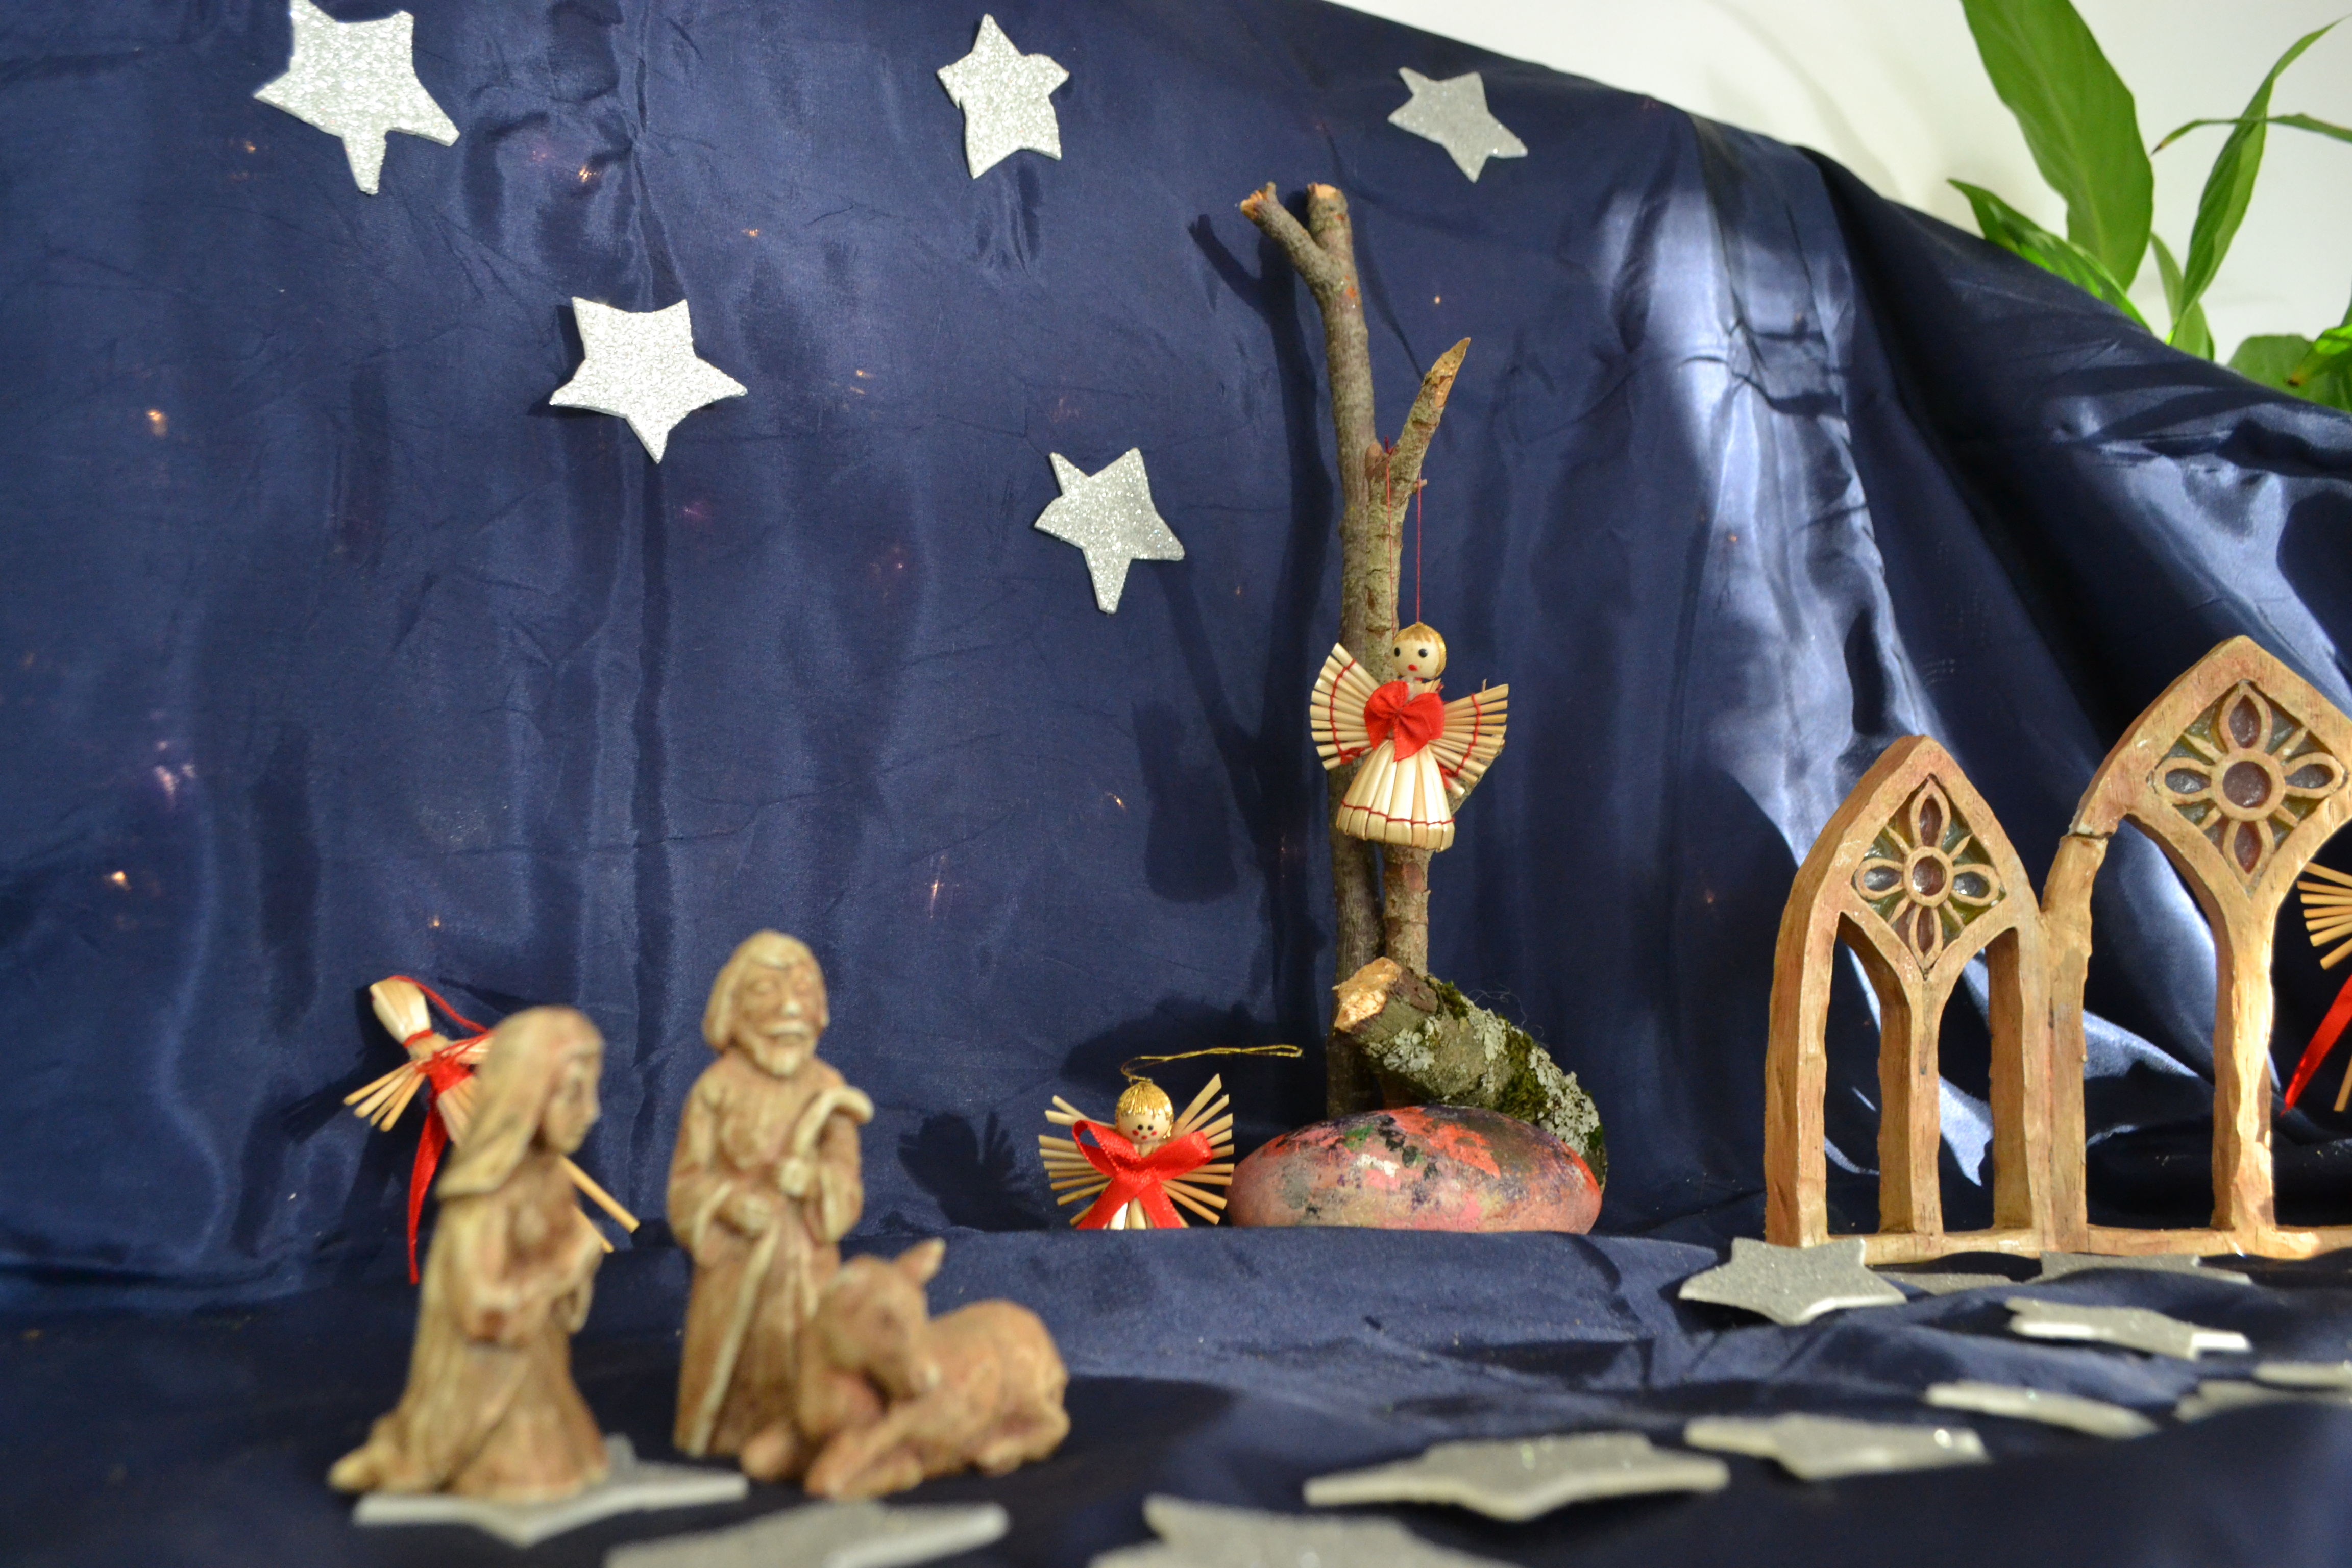 Our nativity